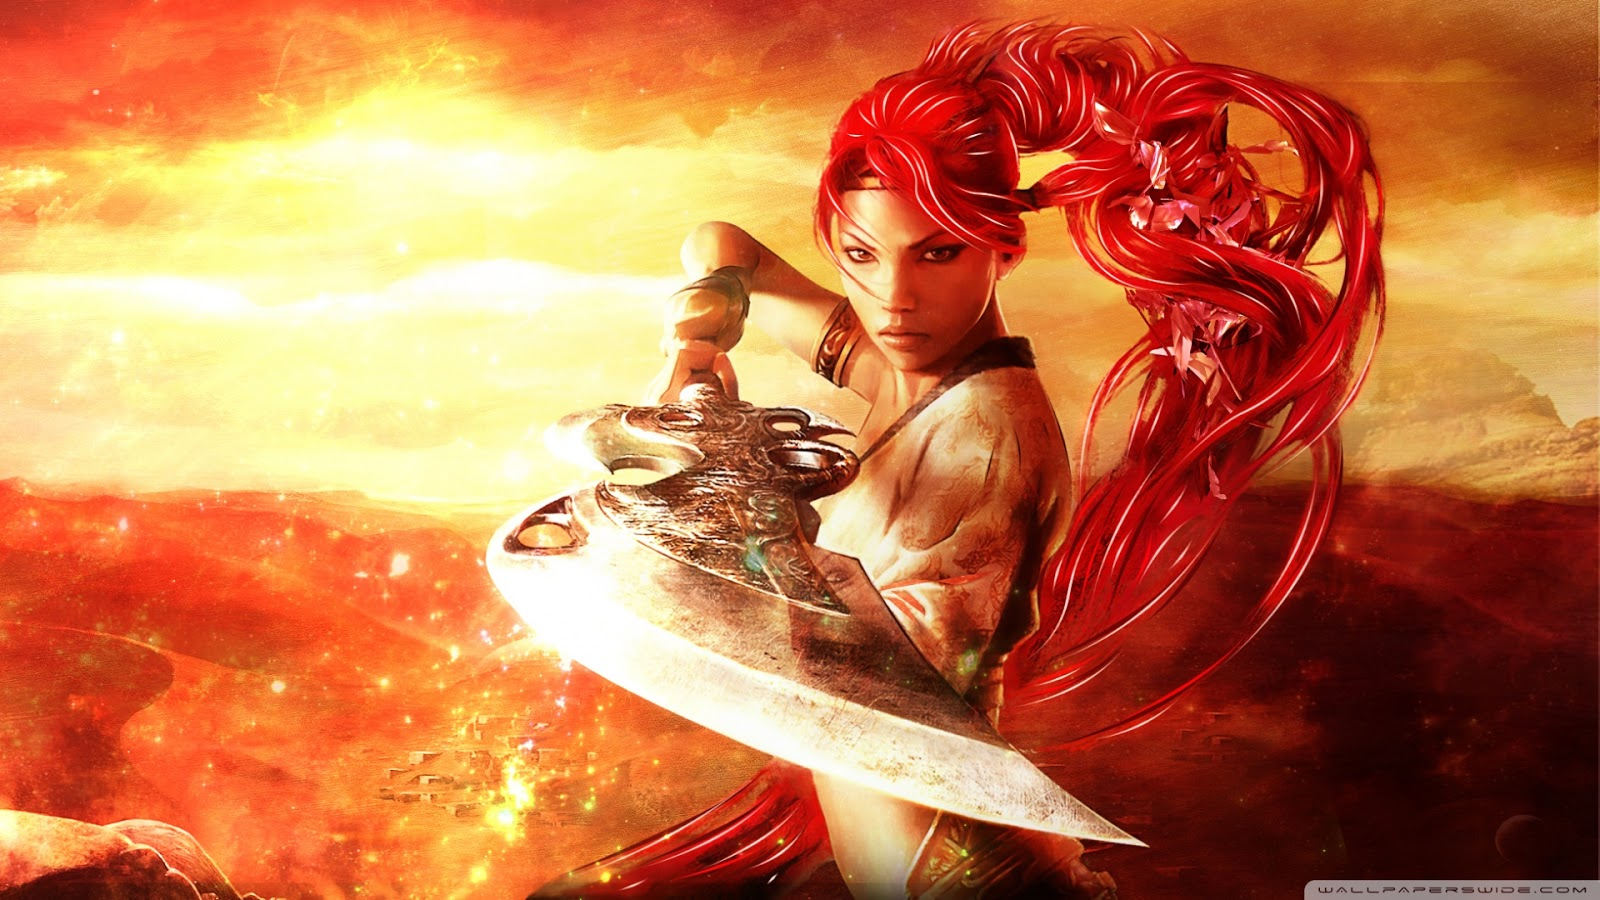 http://1.bp.blogspot.com/-EYl2OiAS_wQ/UP1CChHpU9I/AAAAAAAAA_A/xN19MjHR2w4/s1600/heavenly_sword-wallpaper-1920x1080.jpg